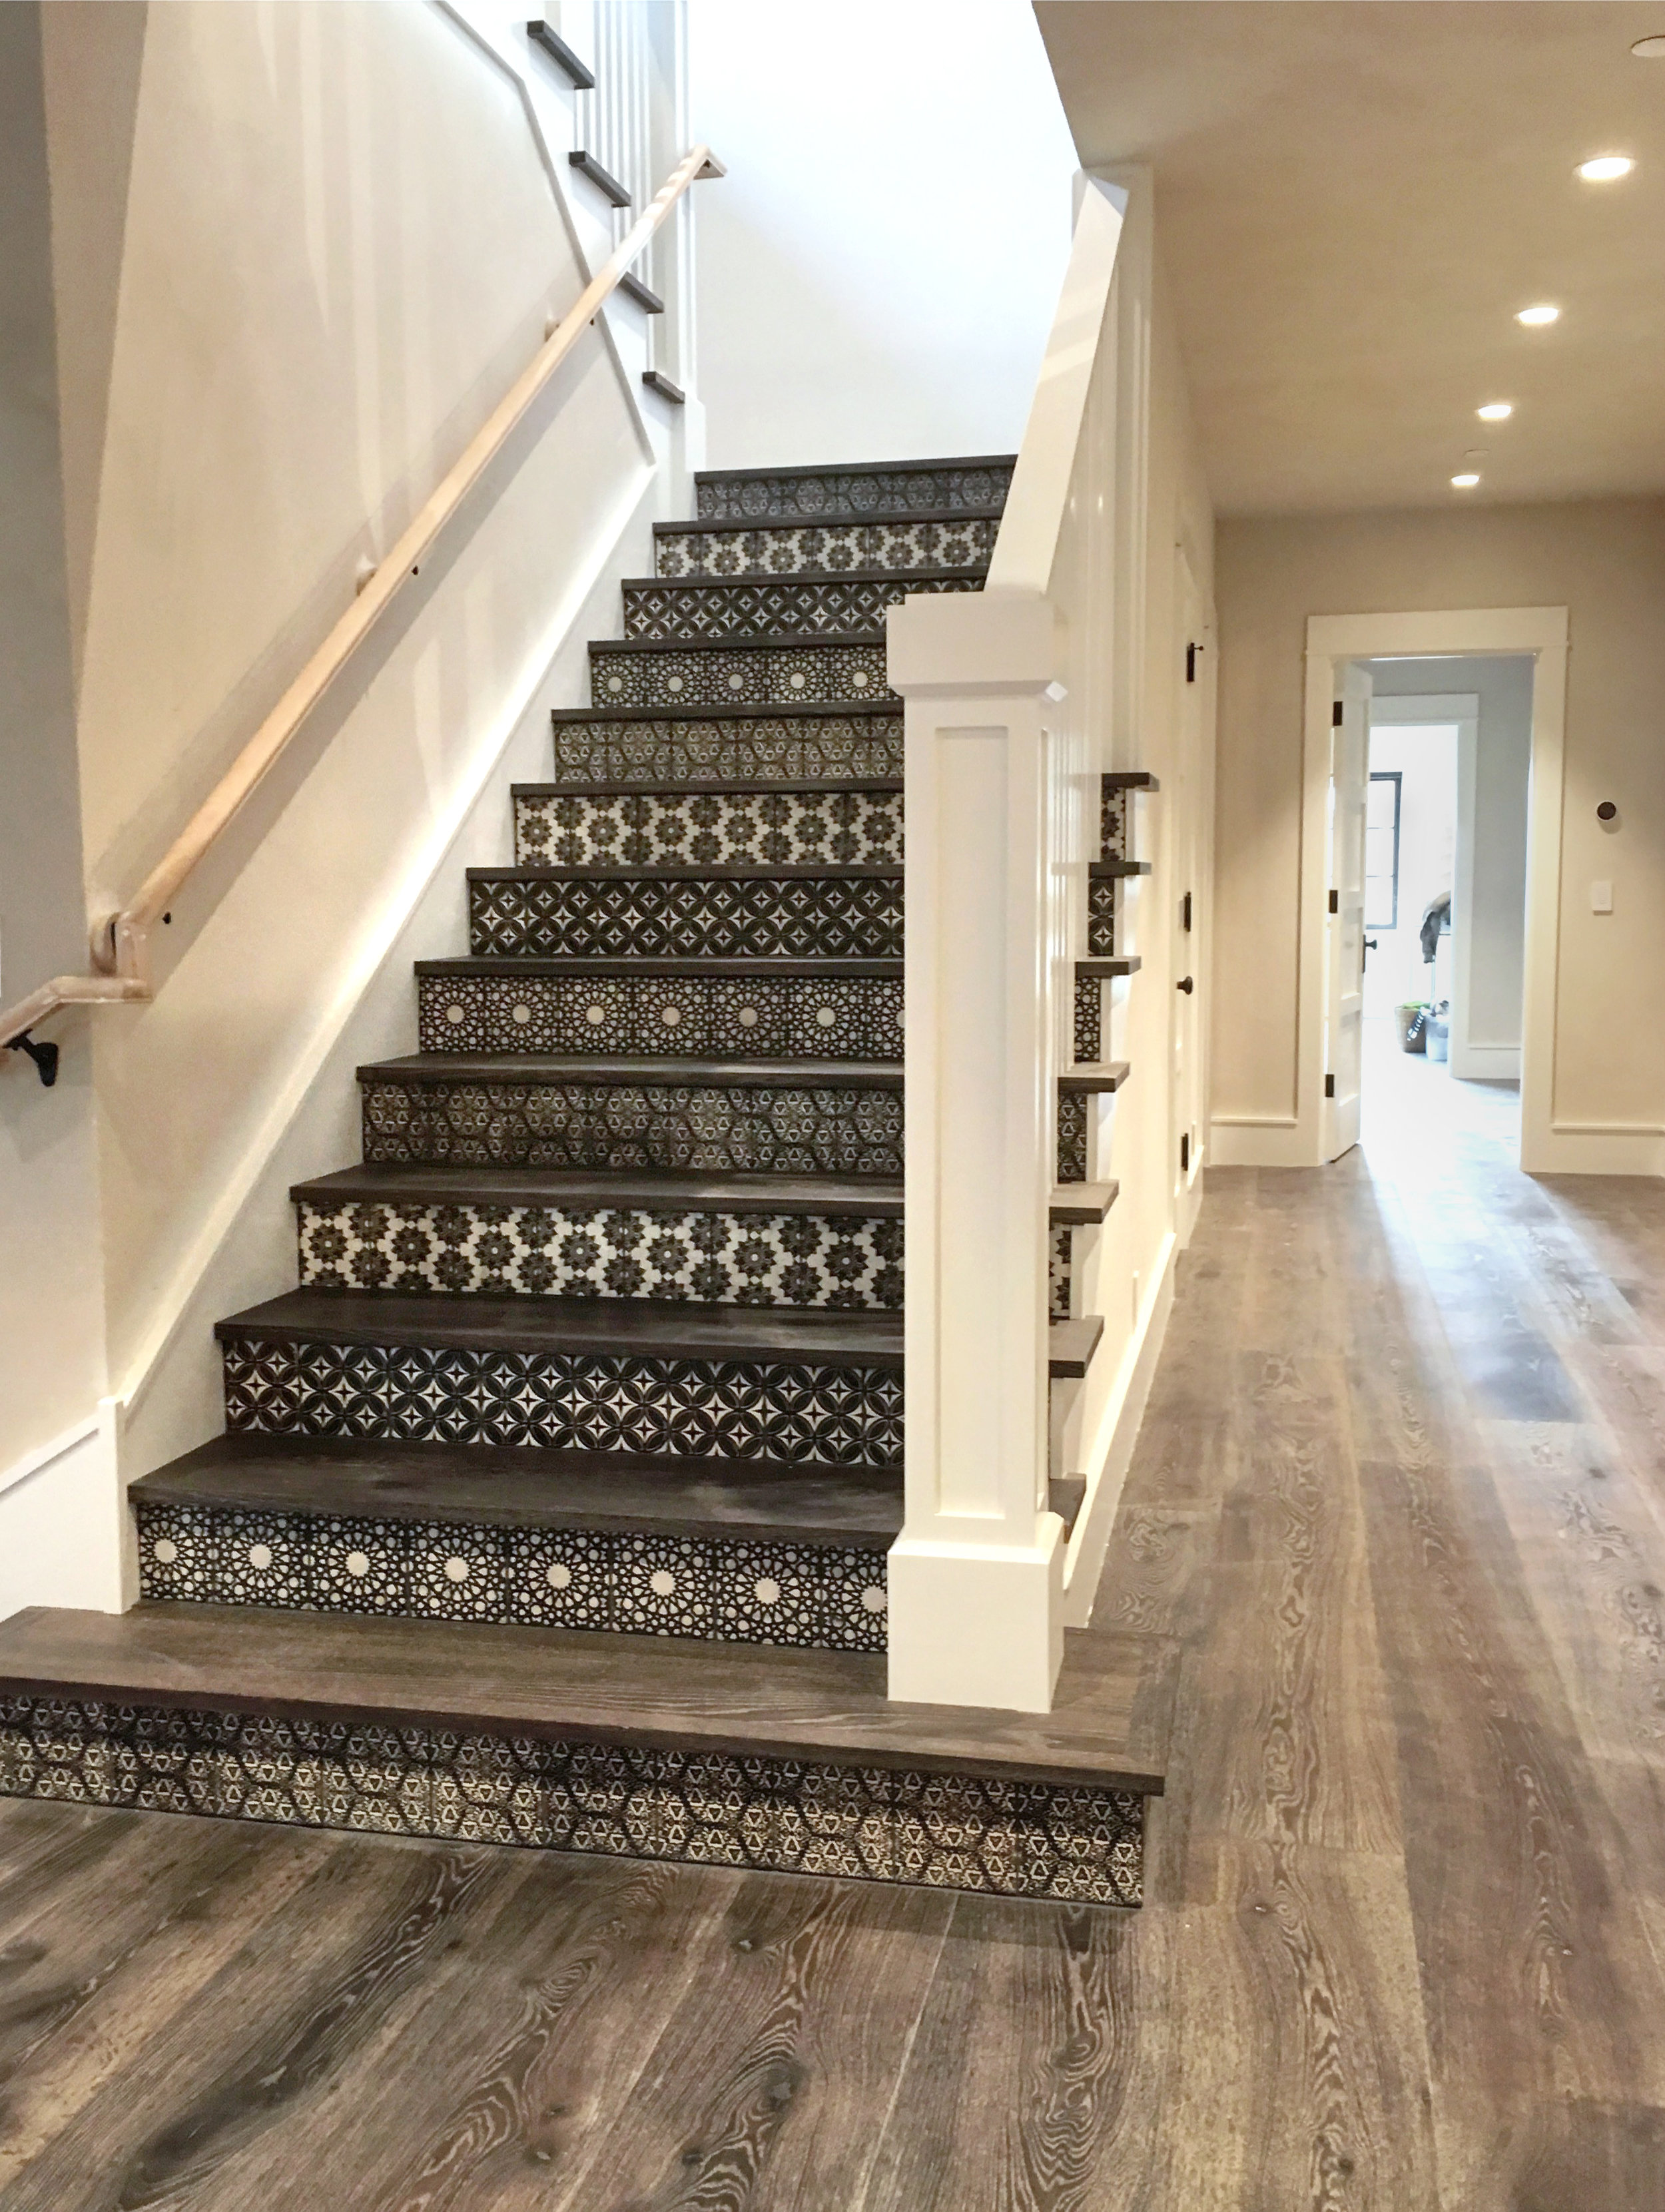 Staircase Risers with Alternating Tile Patterns